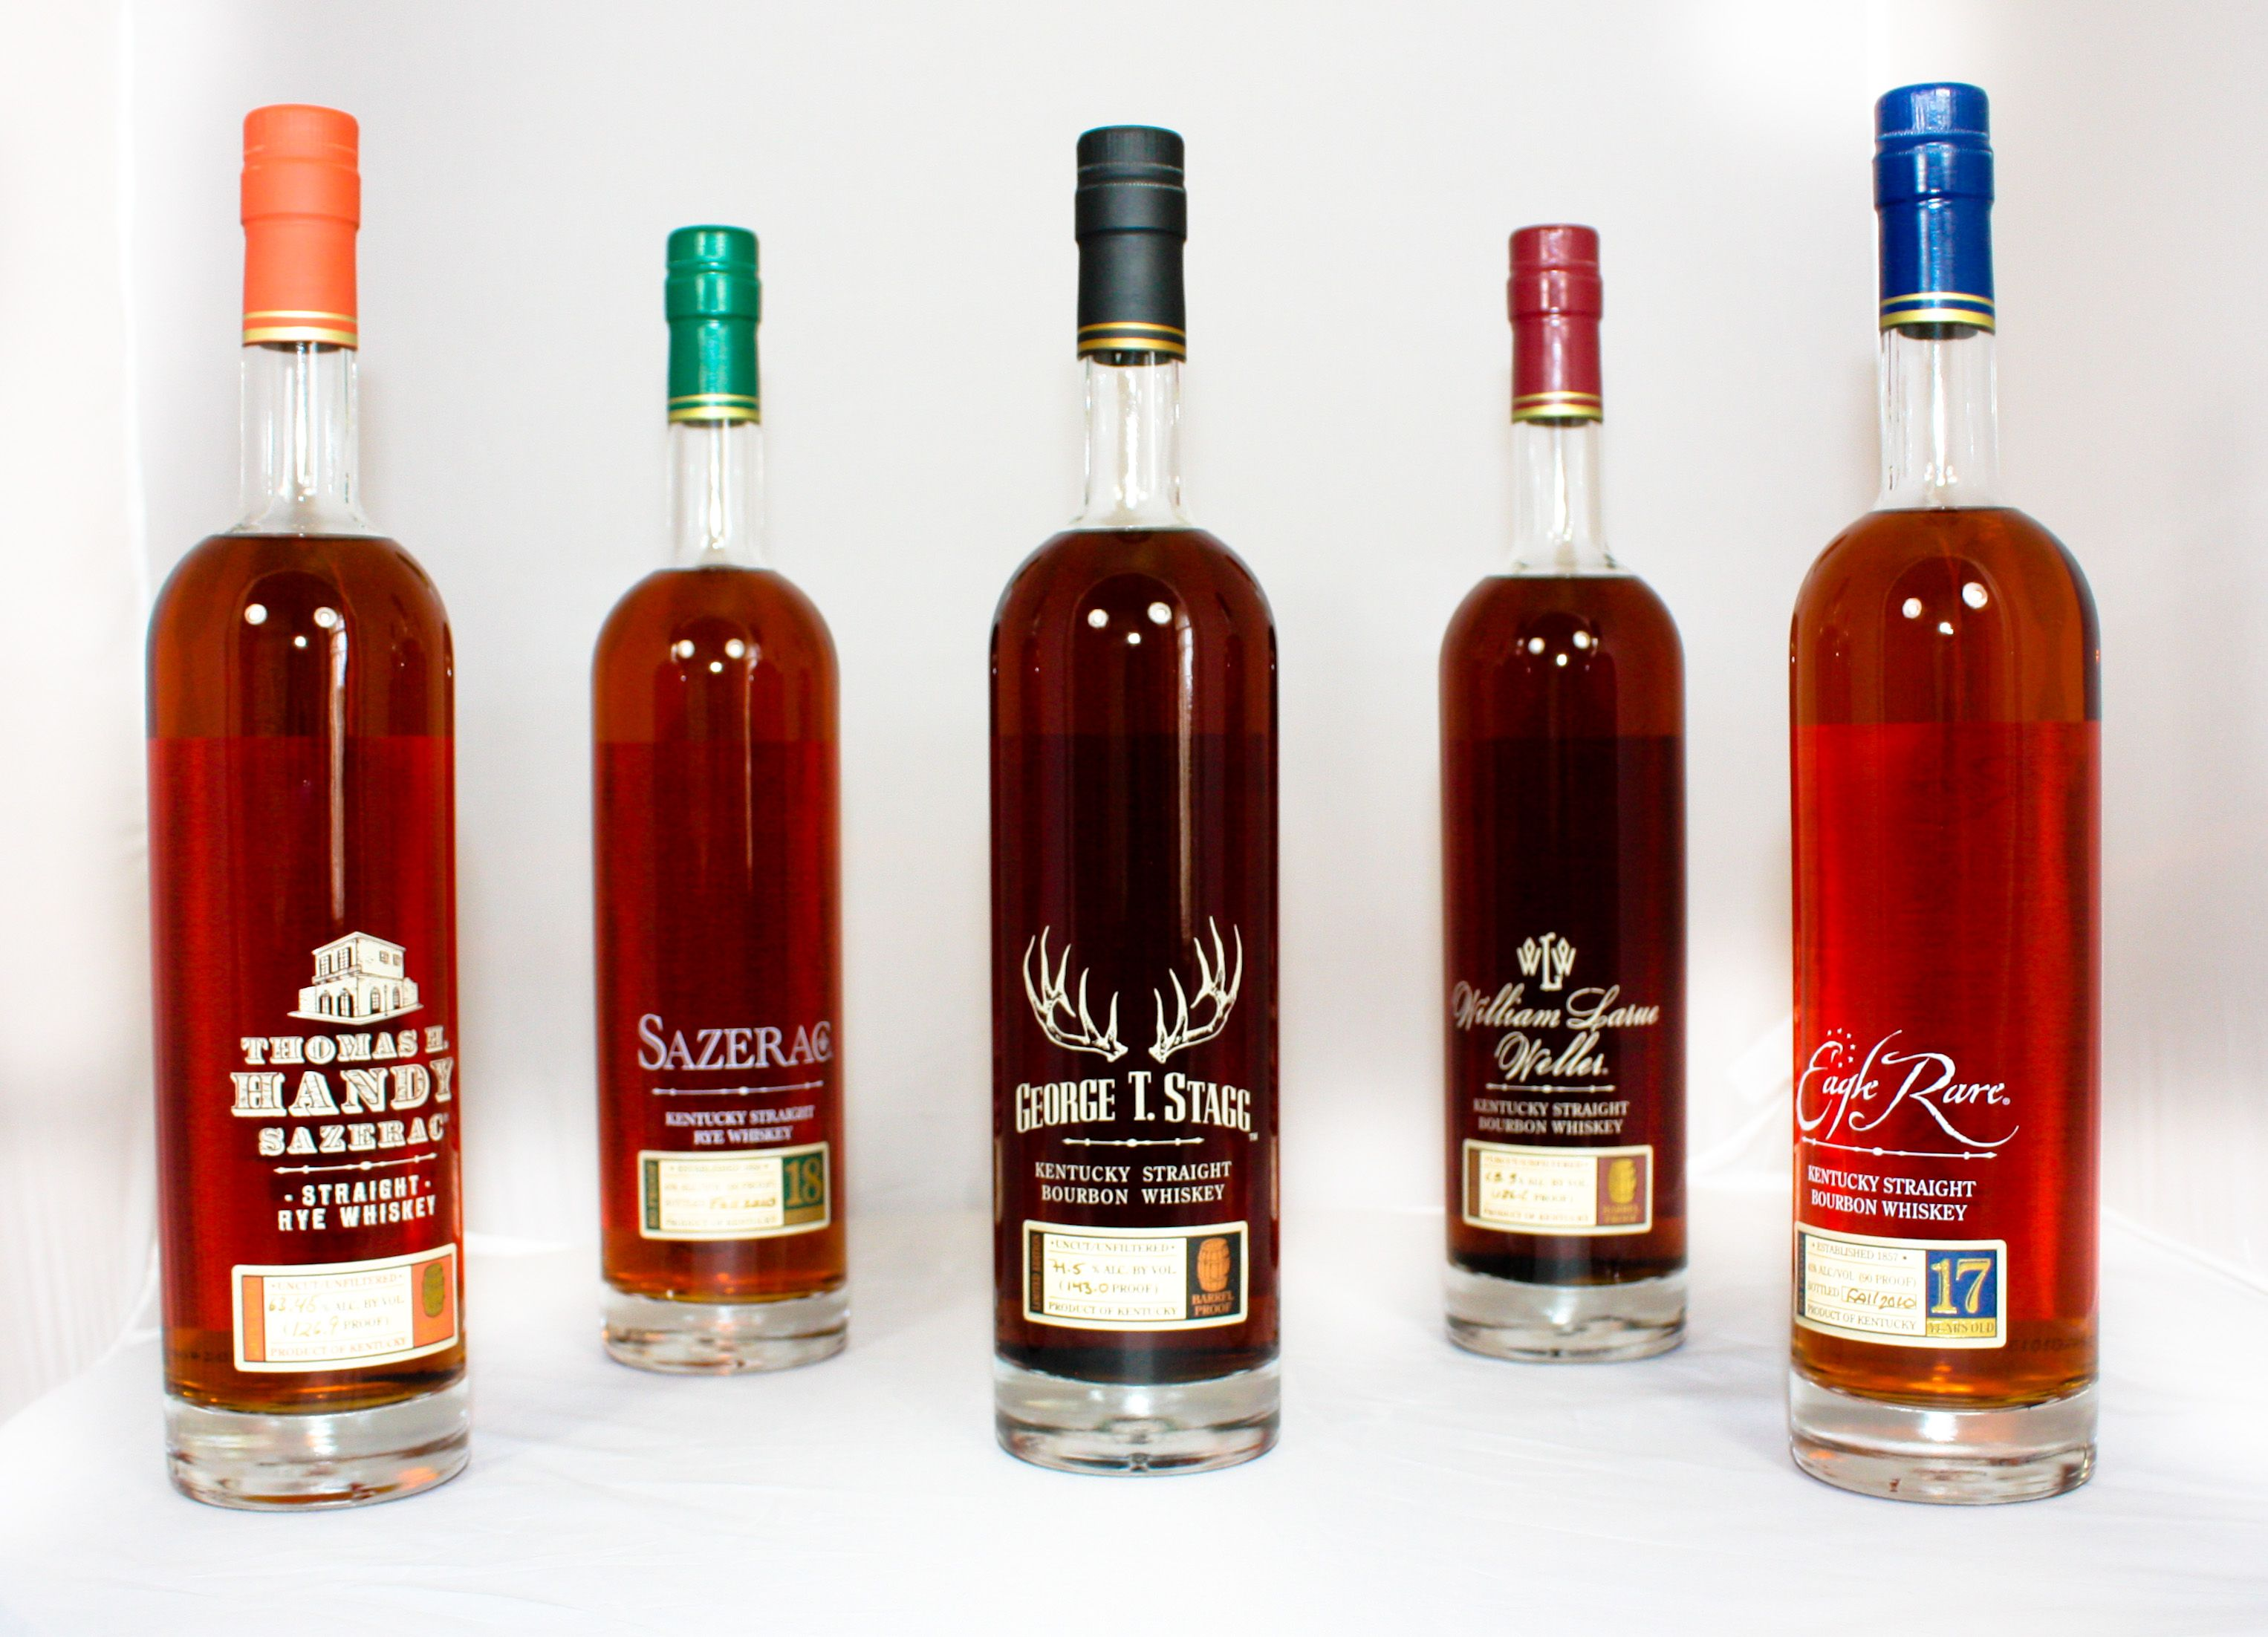 Buffalo Trace Antique Collection Thomas H Handy Sazerac Rye Sazerac Rye 18 Year Old George T Stagg William Larue W Whisky Cocktail Lover Antique Collection